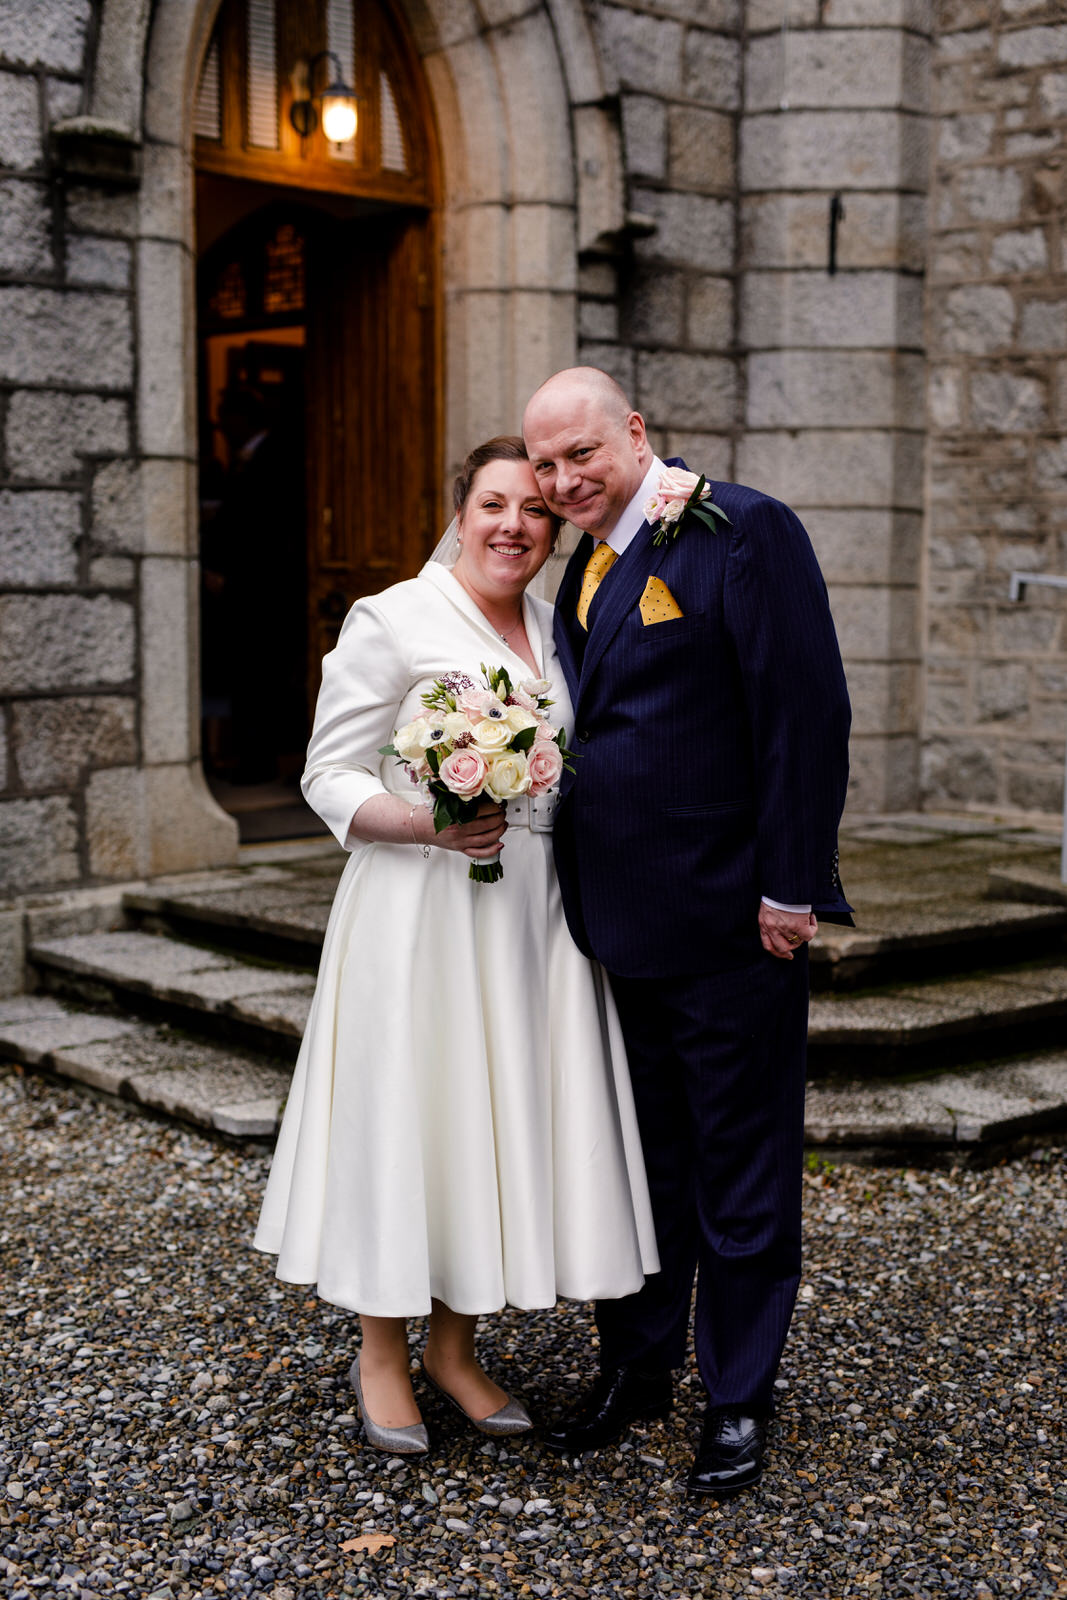 Roger-kenny-wedding-photographer-wicklow-glenview_047.jpg